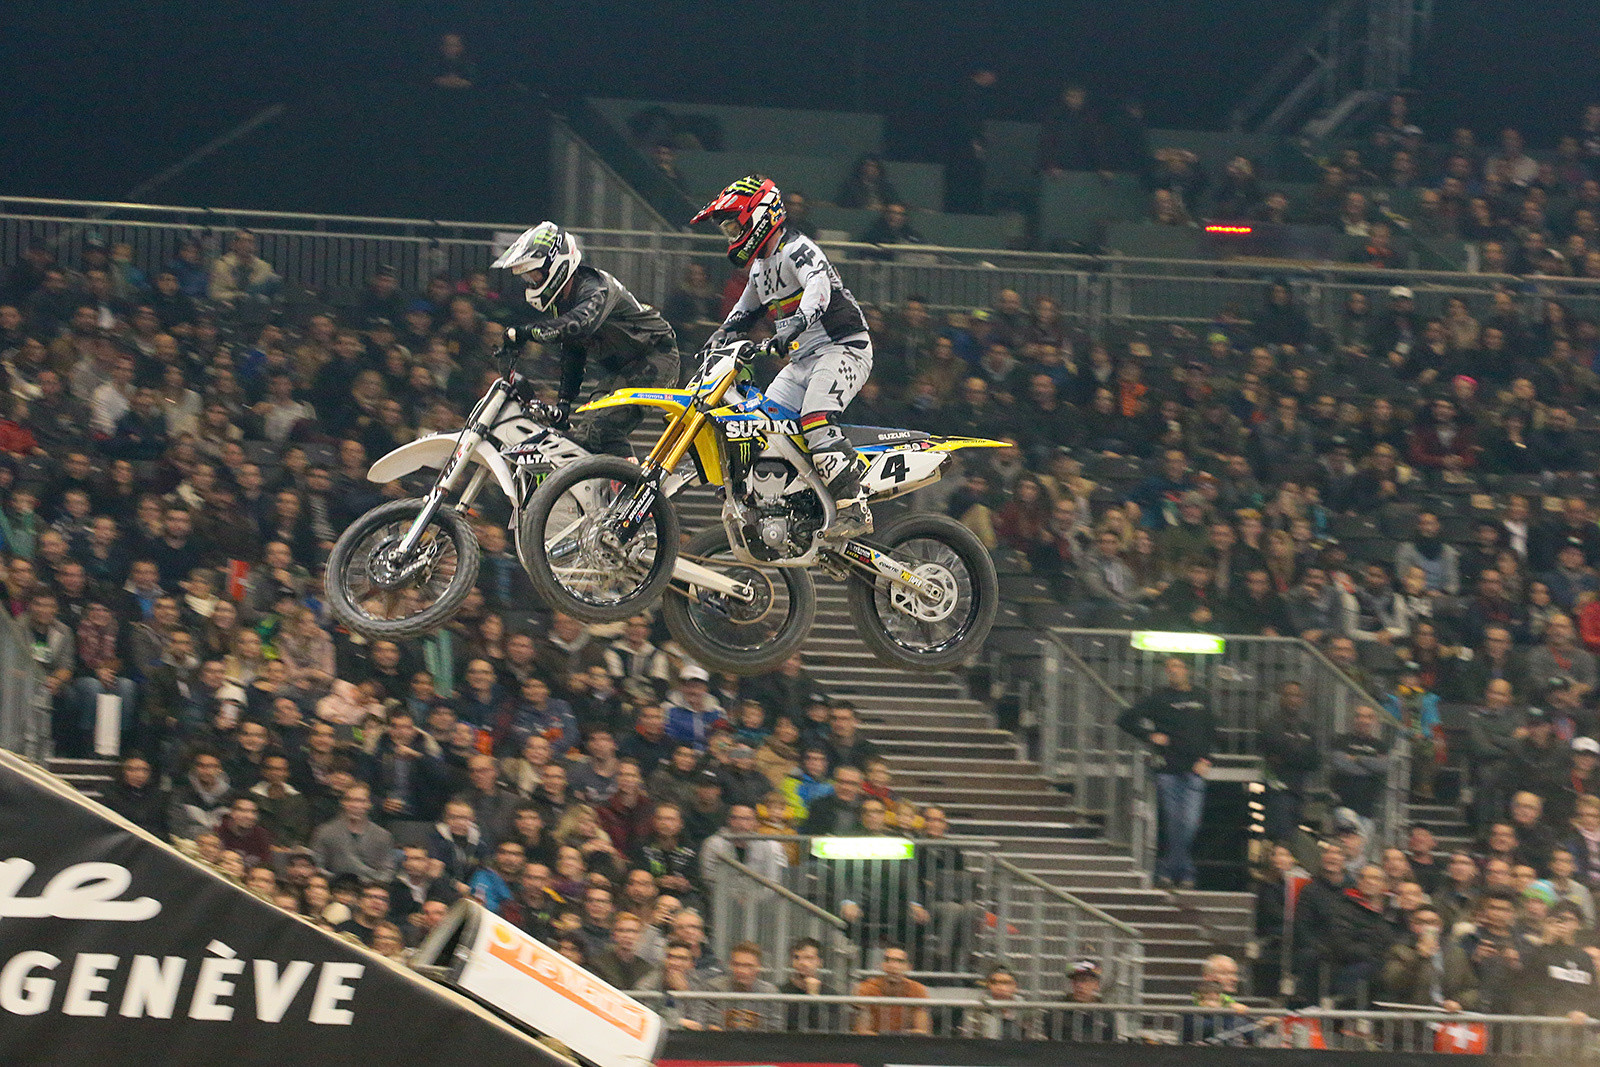 These two put on a good show, no one got punted into the stands, and Ricky Carmichael took the trophy.